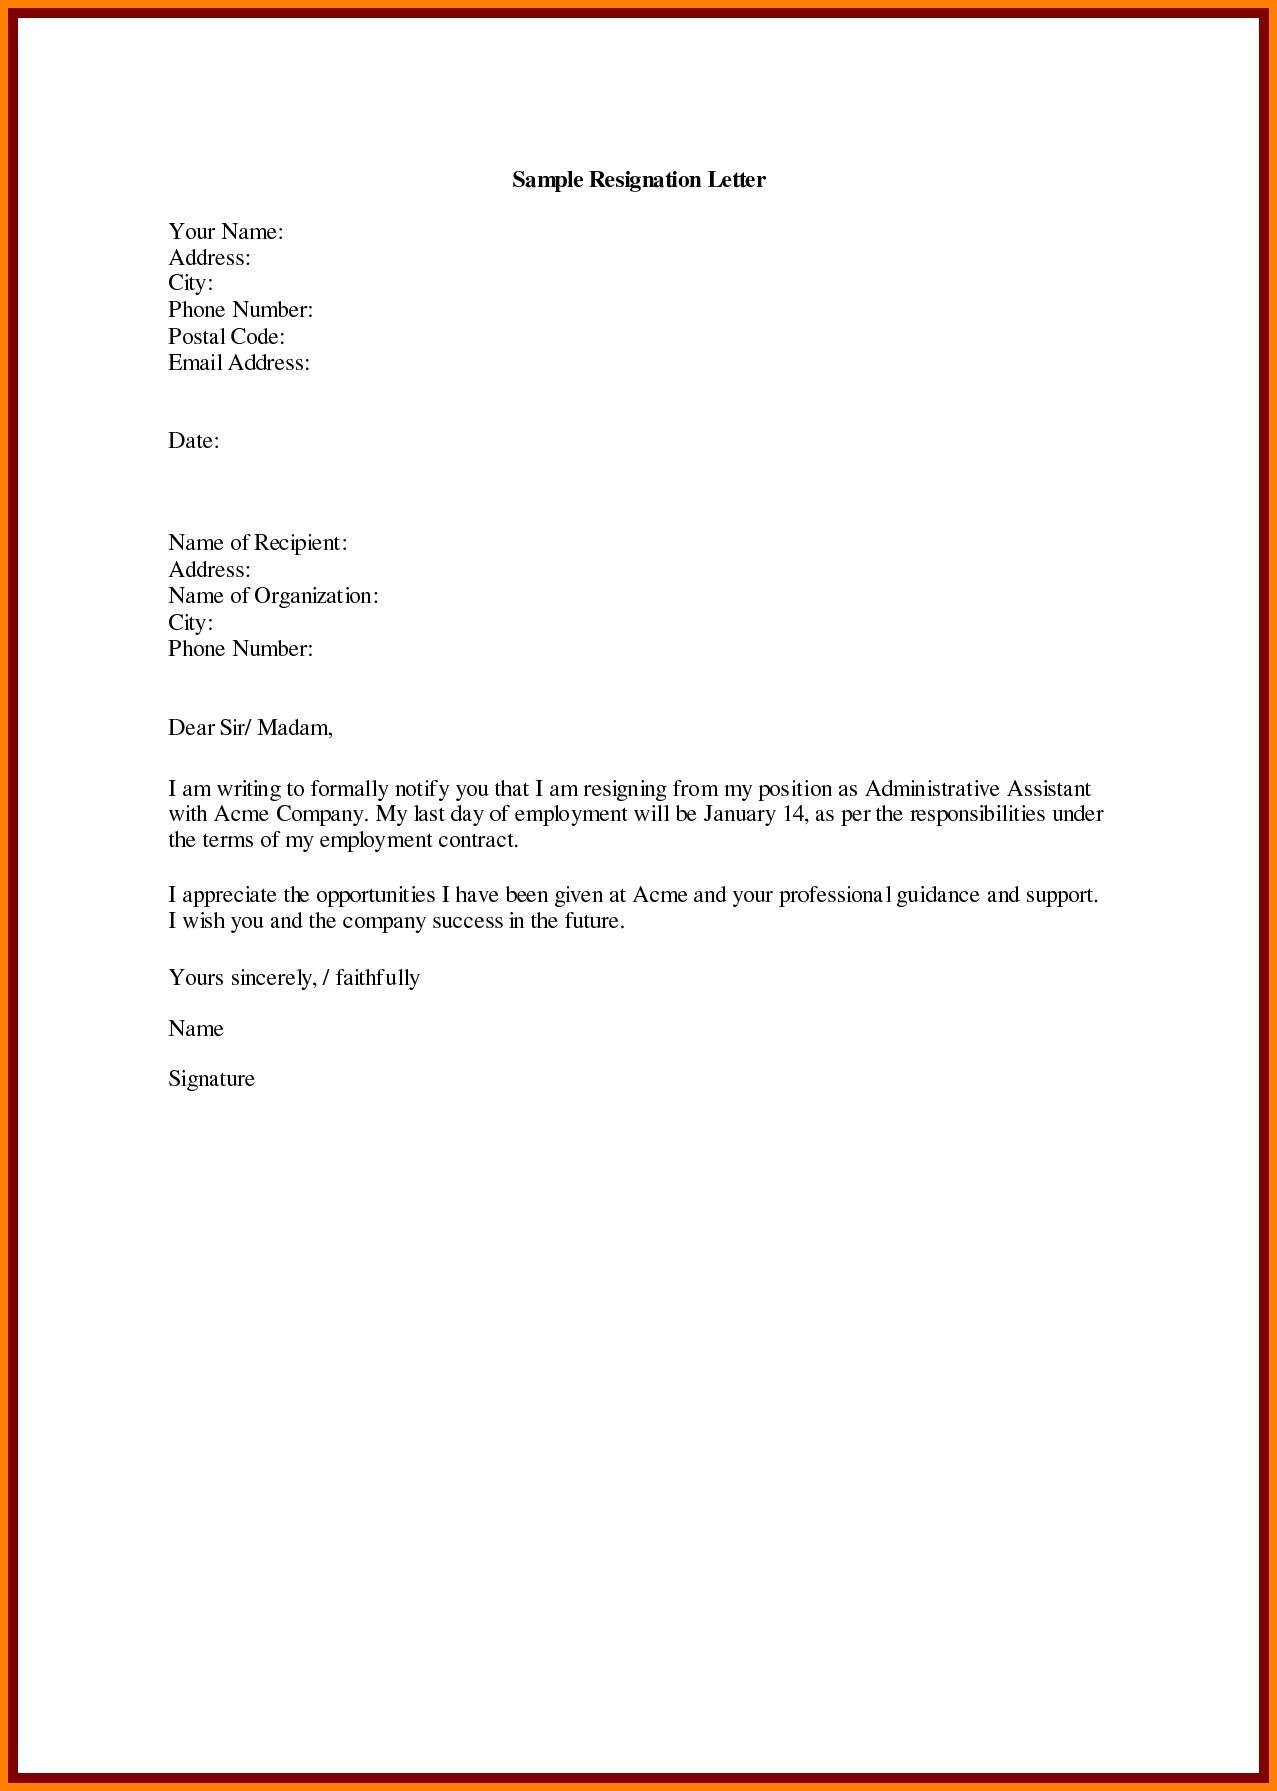 Professional Resignation Letter Template - Sample Resignation Letter Template Doc Copy Samples Resignation